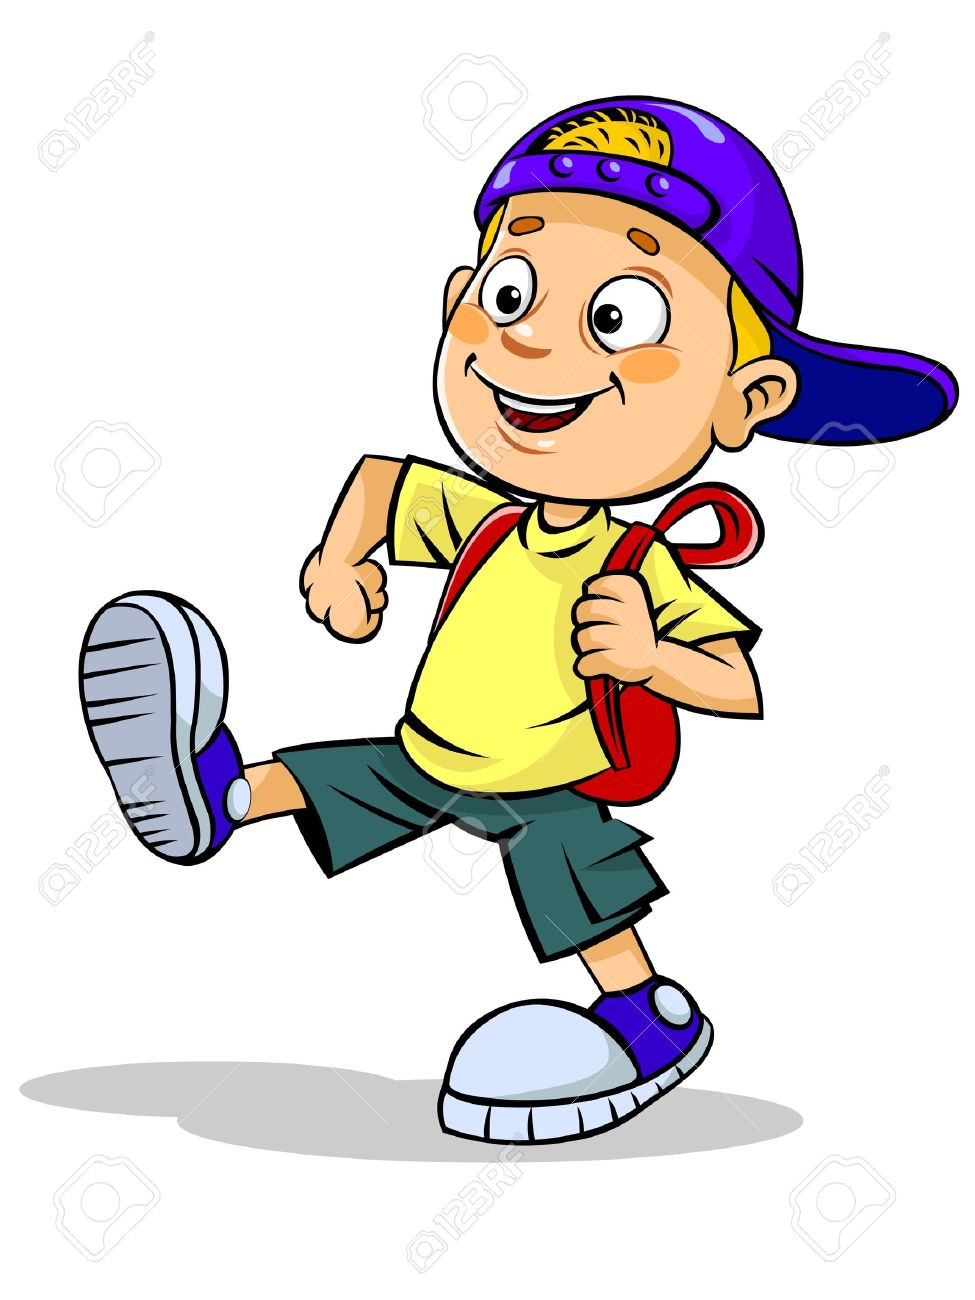 boys cartoon kid with school bag - Cartoon Kid Images